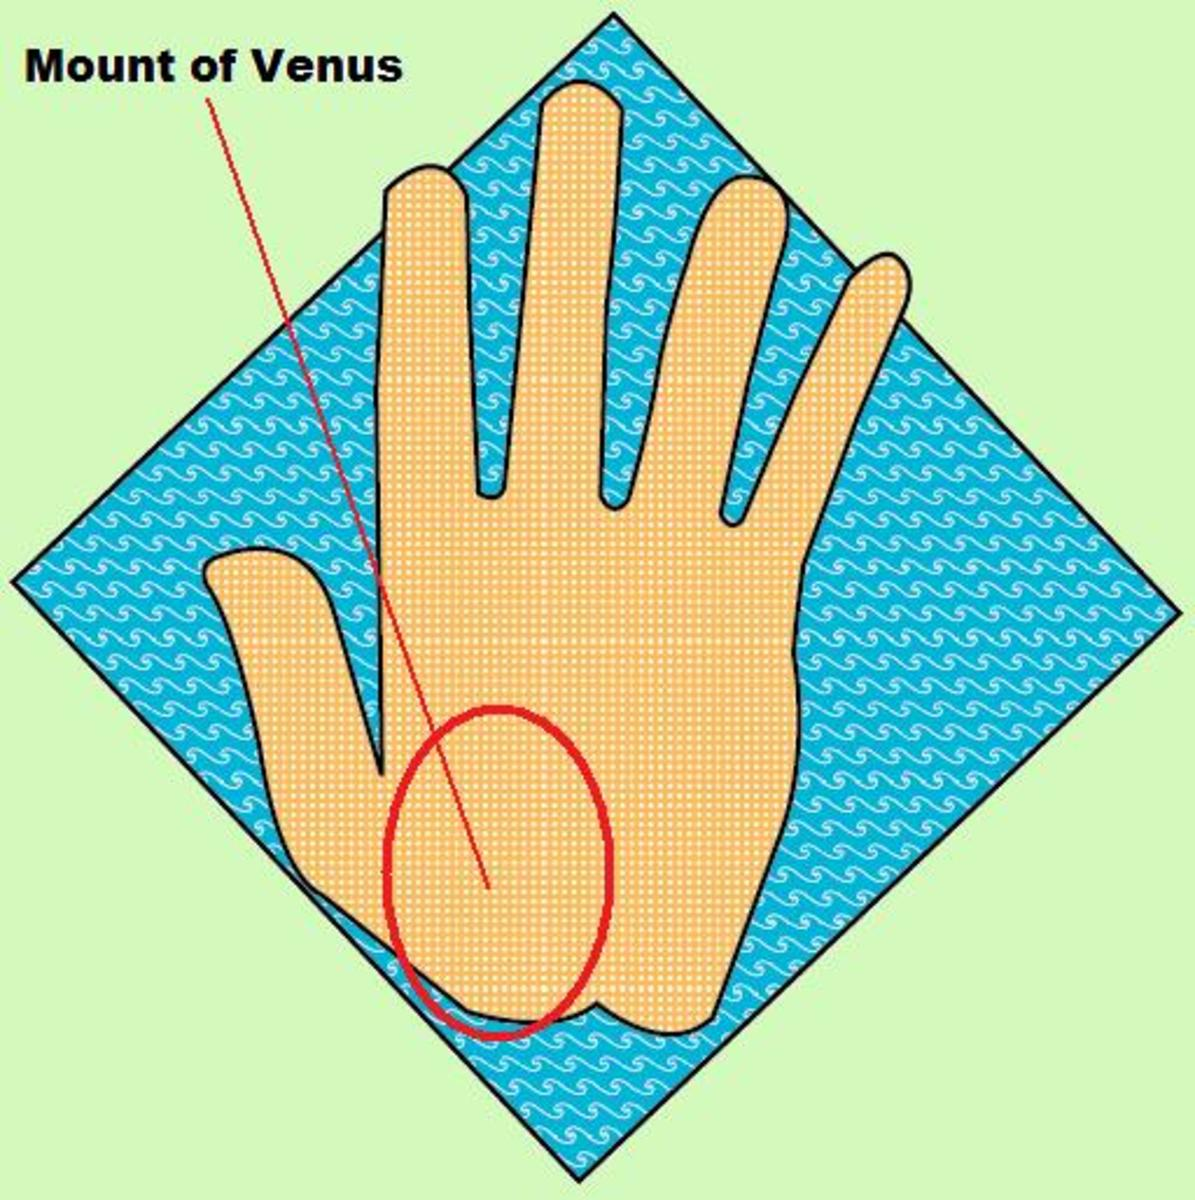 Venus mount below thumb